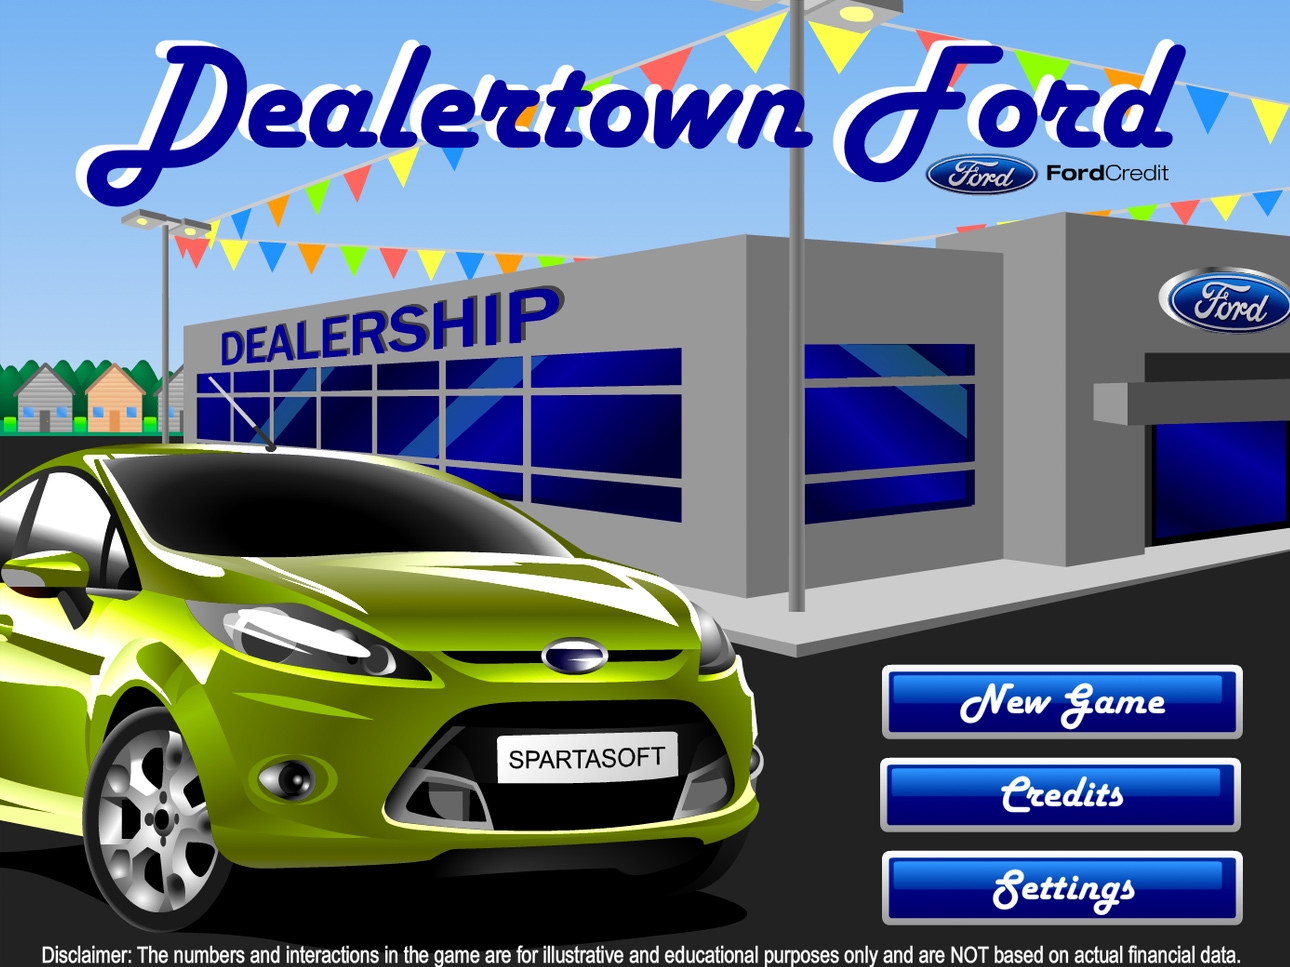 screenshot-dealtertownford2